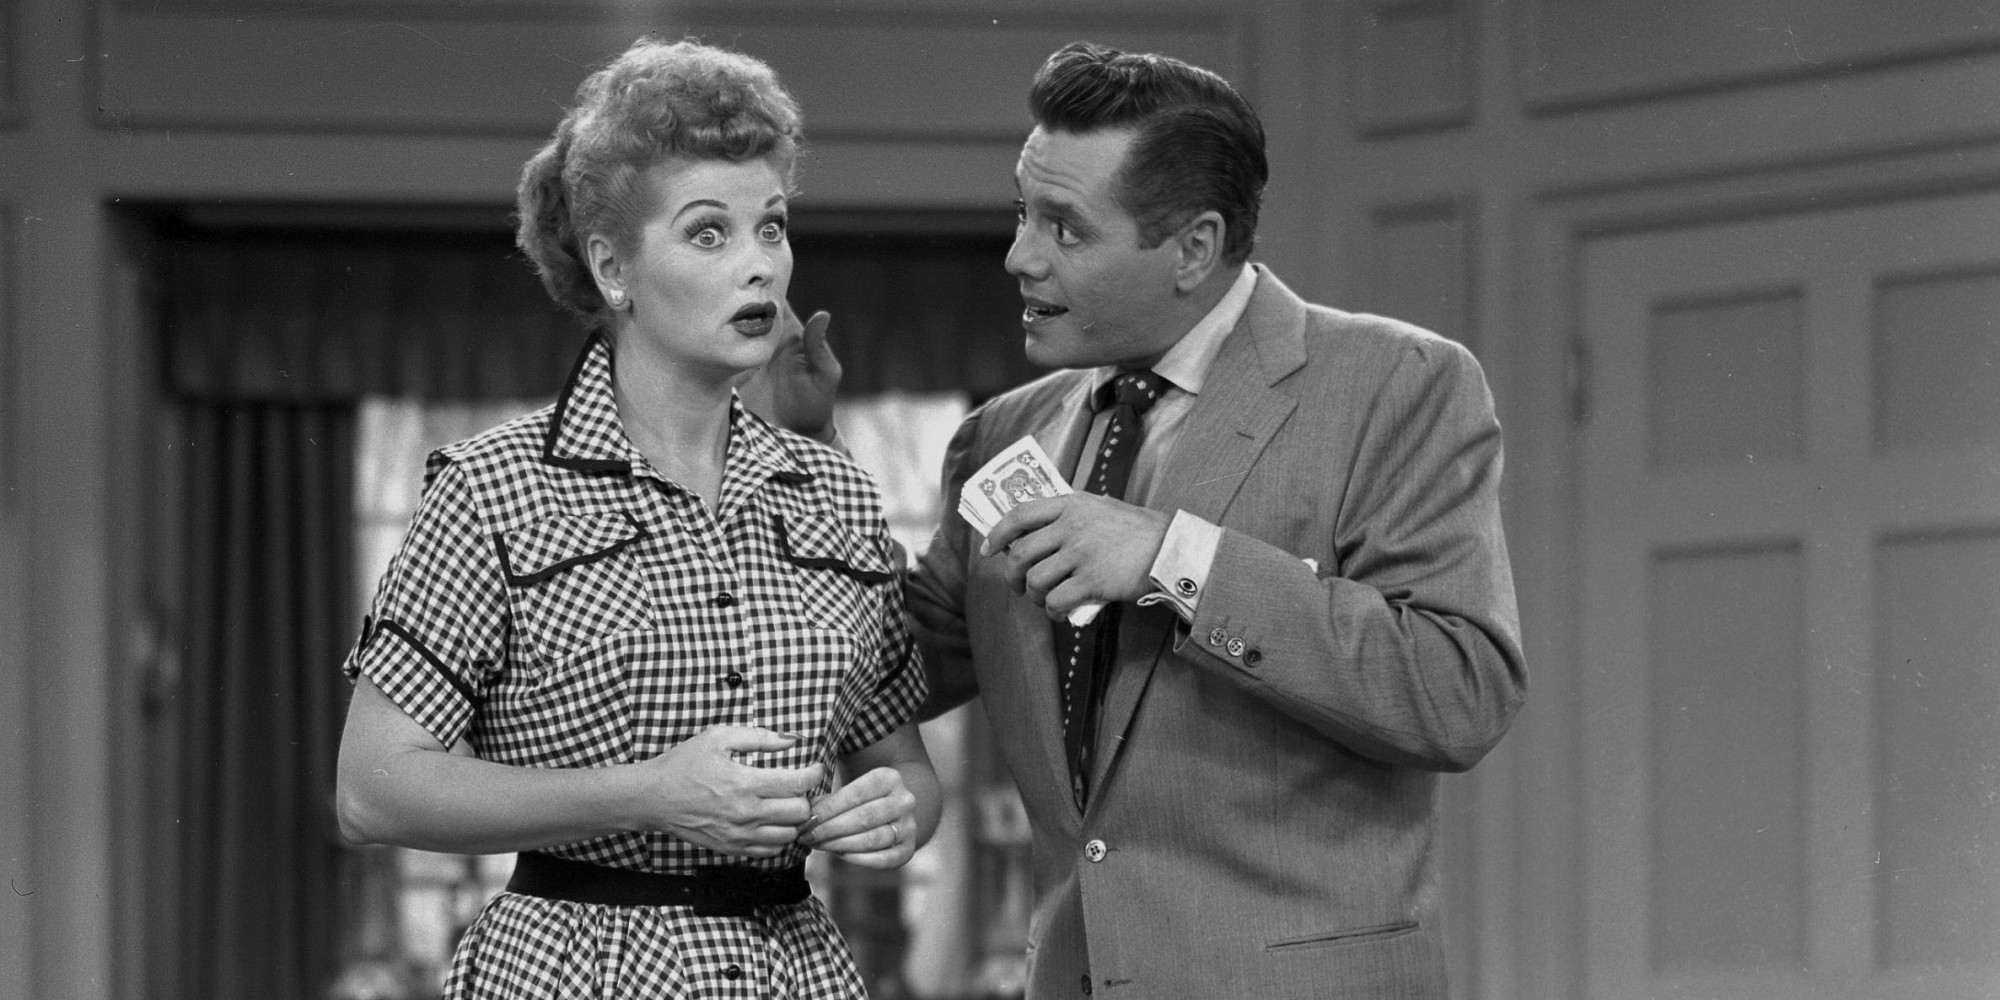 Lucille Ball And Desi Arnaz In 'I Love Lucy'